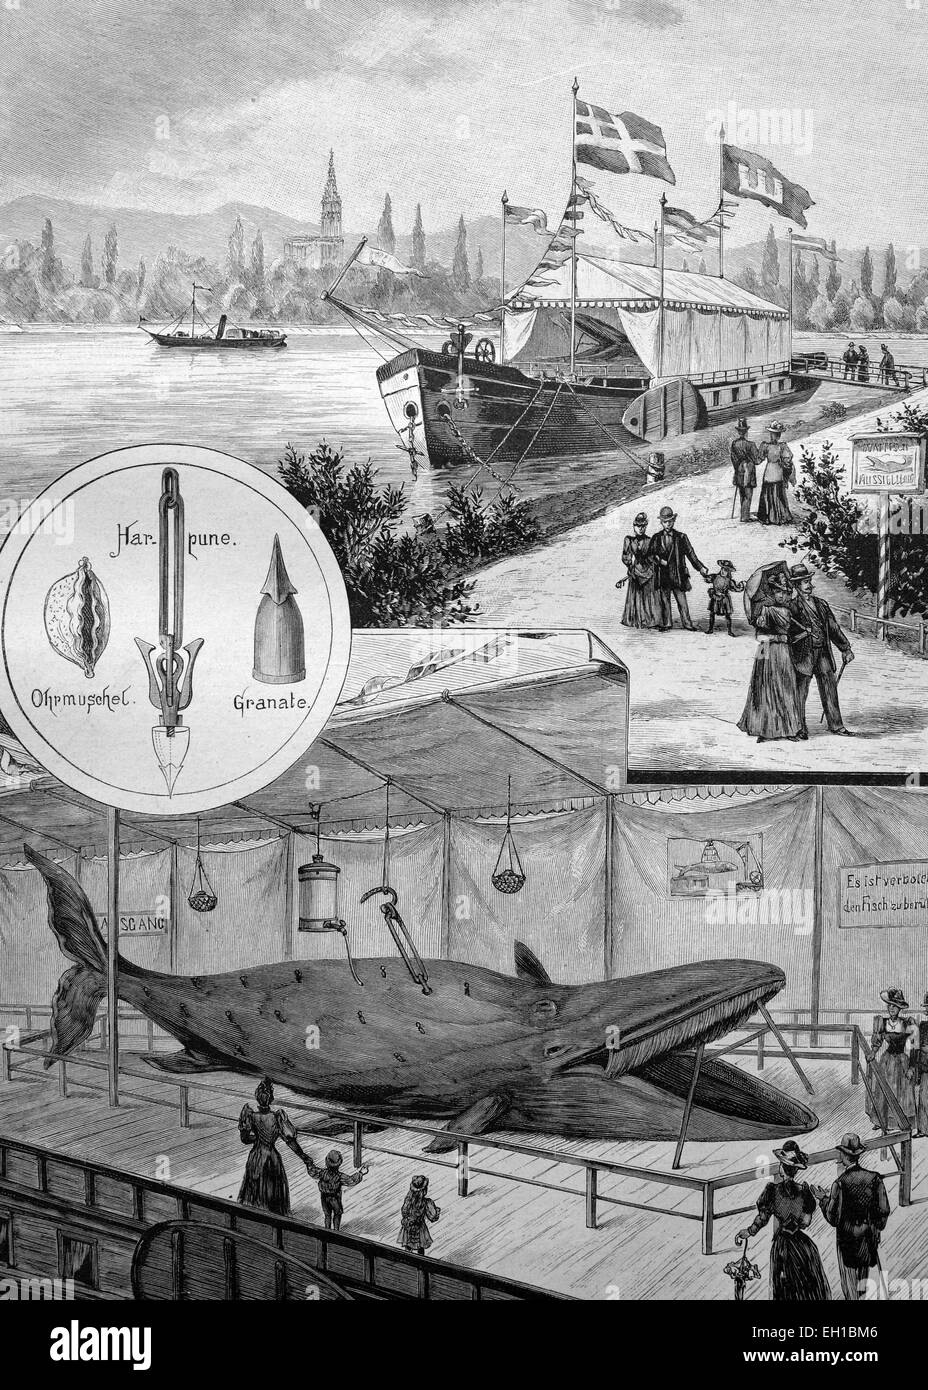 Floating whale exhibition on the Rhine River, historical illustration, ca. 1893 - Stock Image